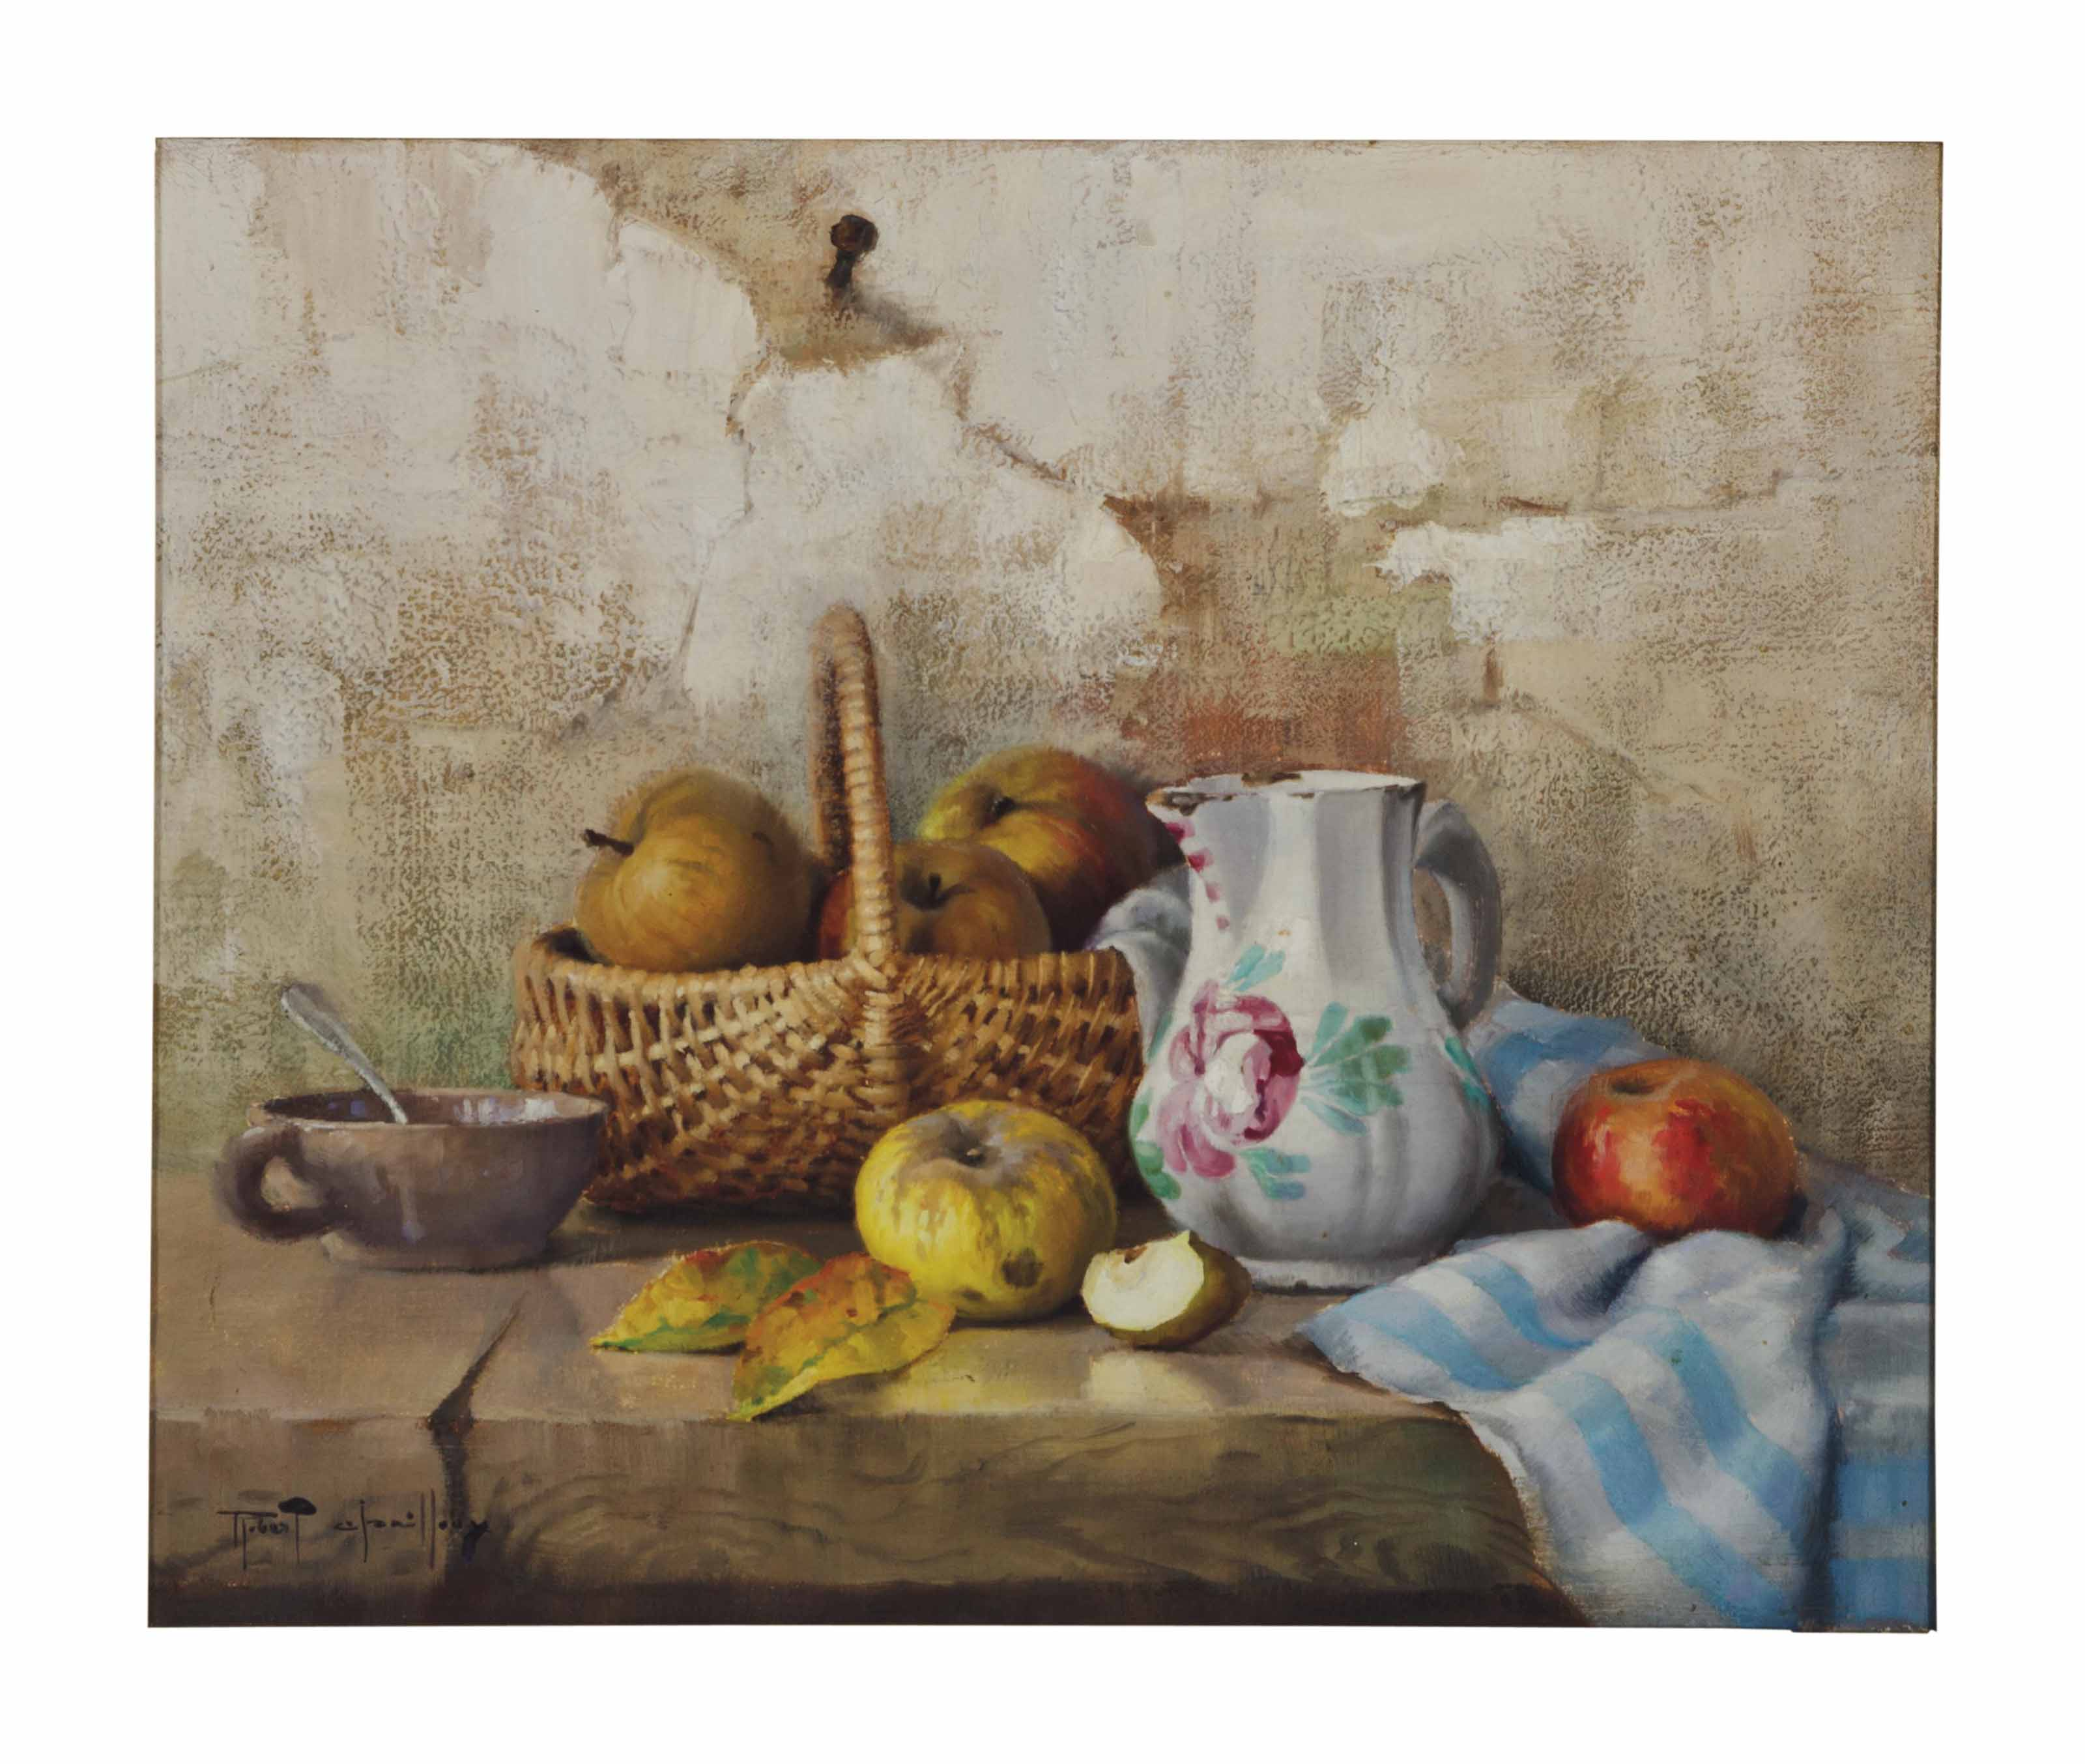 Still life with pitcher and apples in a whicker basket